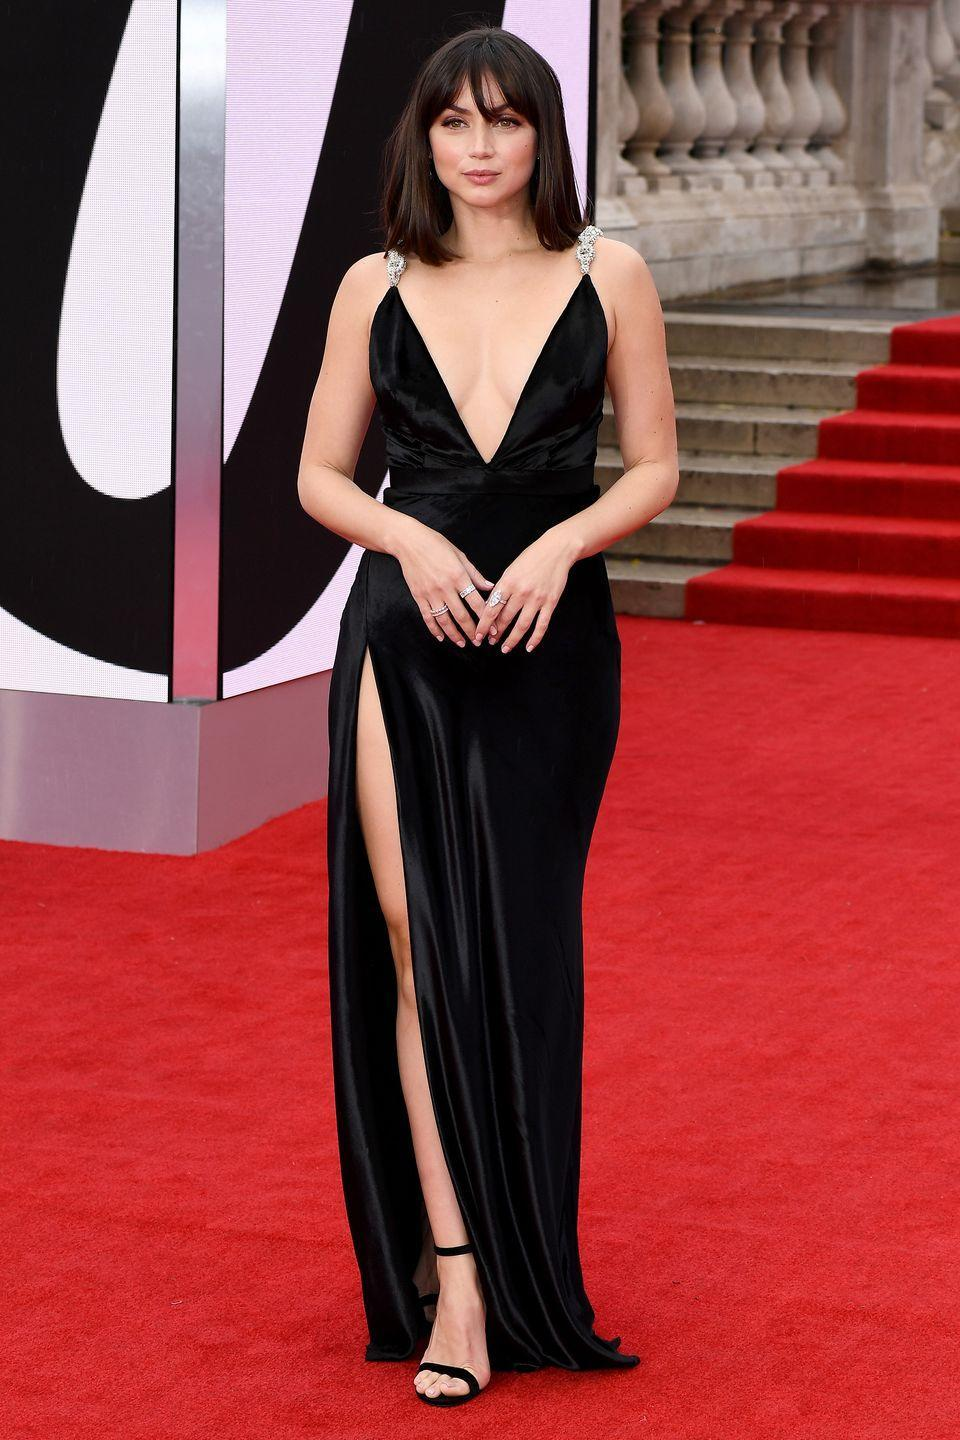 """<p>Ana de Armas wore a silky black Louis Vuitton dress with embellished straps, a look that nodded to the <a href=""""https://www.harpersbazaar.com/uk/fashion/fashion-news/a37771489/no-time-to-die-on-set-ana-de-armas/"""" rel=""""nofollow noopener"""" target=""""_blank"""" data-ylk=""""slk:simple black gown she wears in the film"""" class=""""link rapid-noclick-resp"""">simple black gown she wears in the film</a>. </p>"""